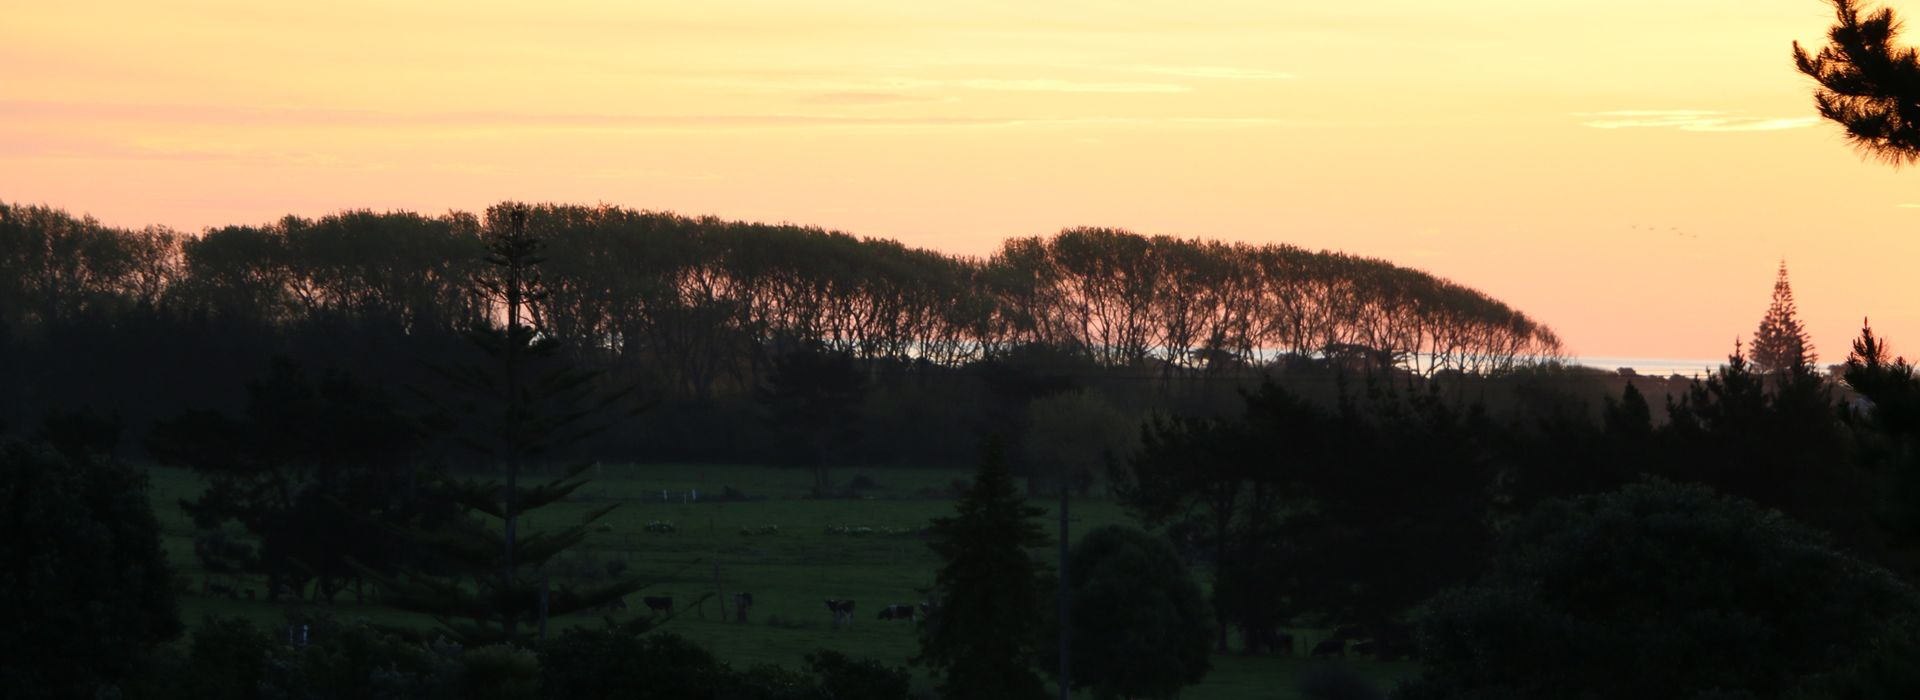 Sunset at Otaki